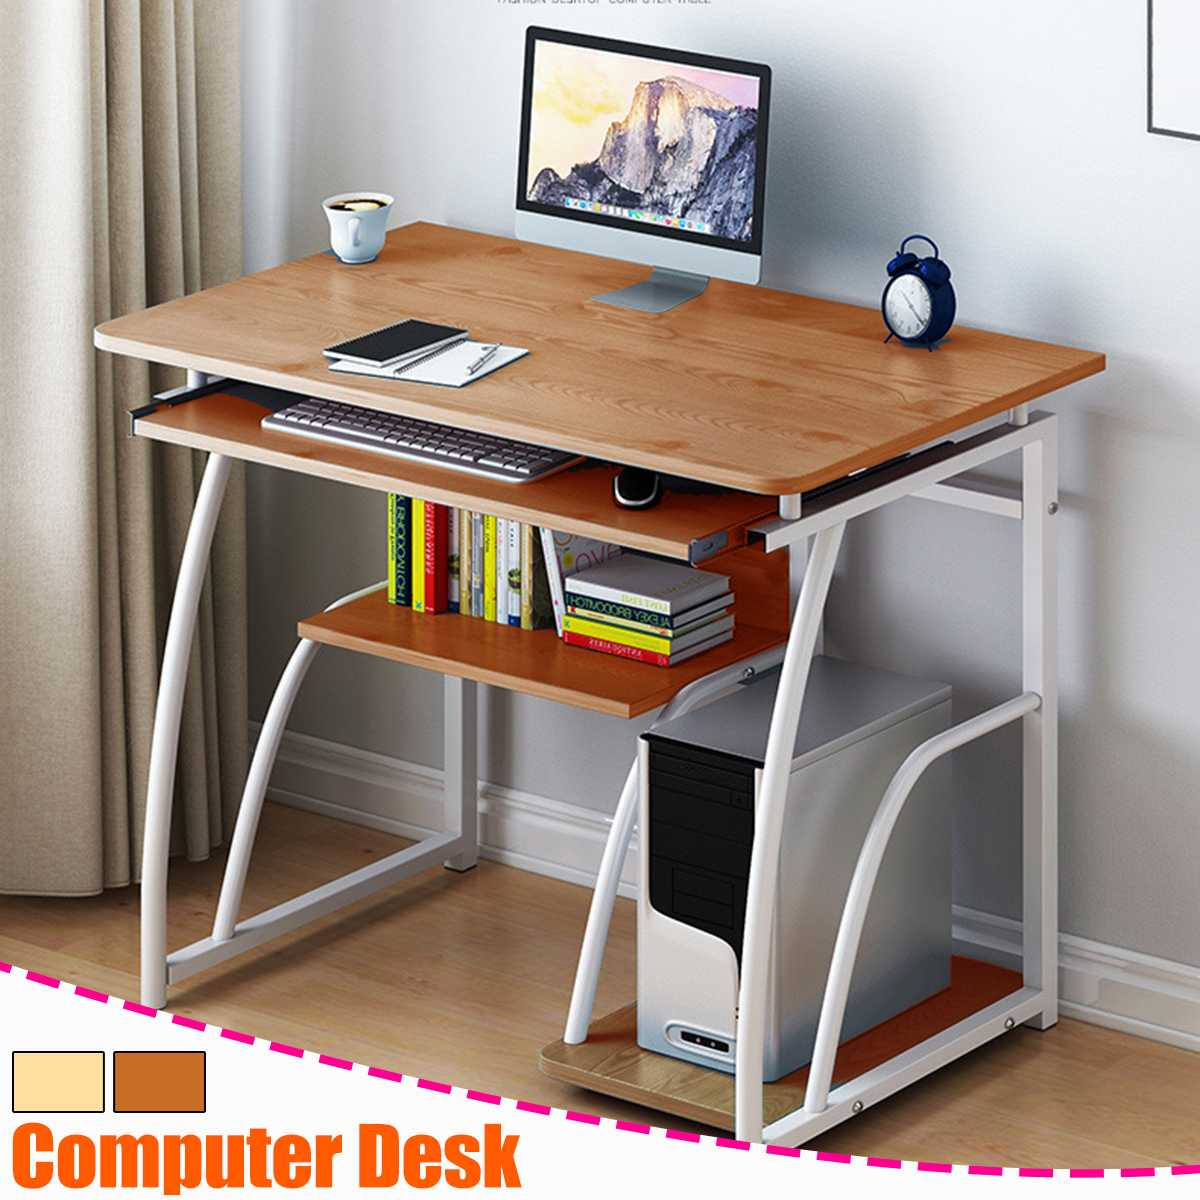 Modern Computer Desk with Keyboard bracket PC Workstation Study Writing Table Home Office Furniture 71cm 1